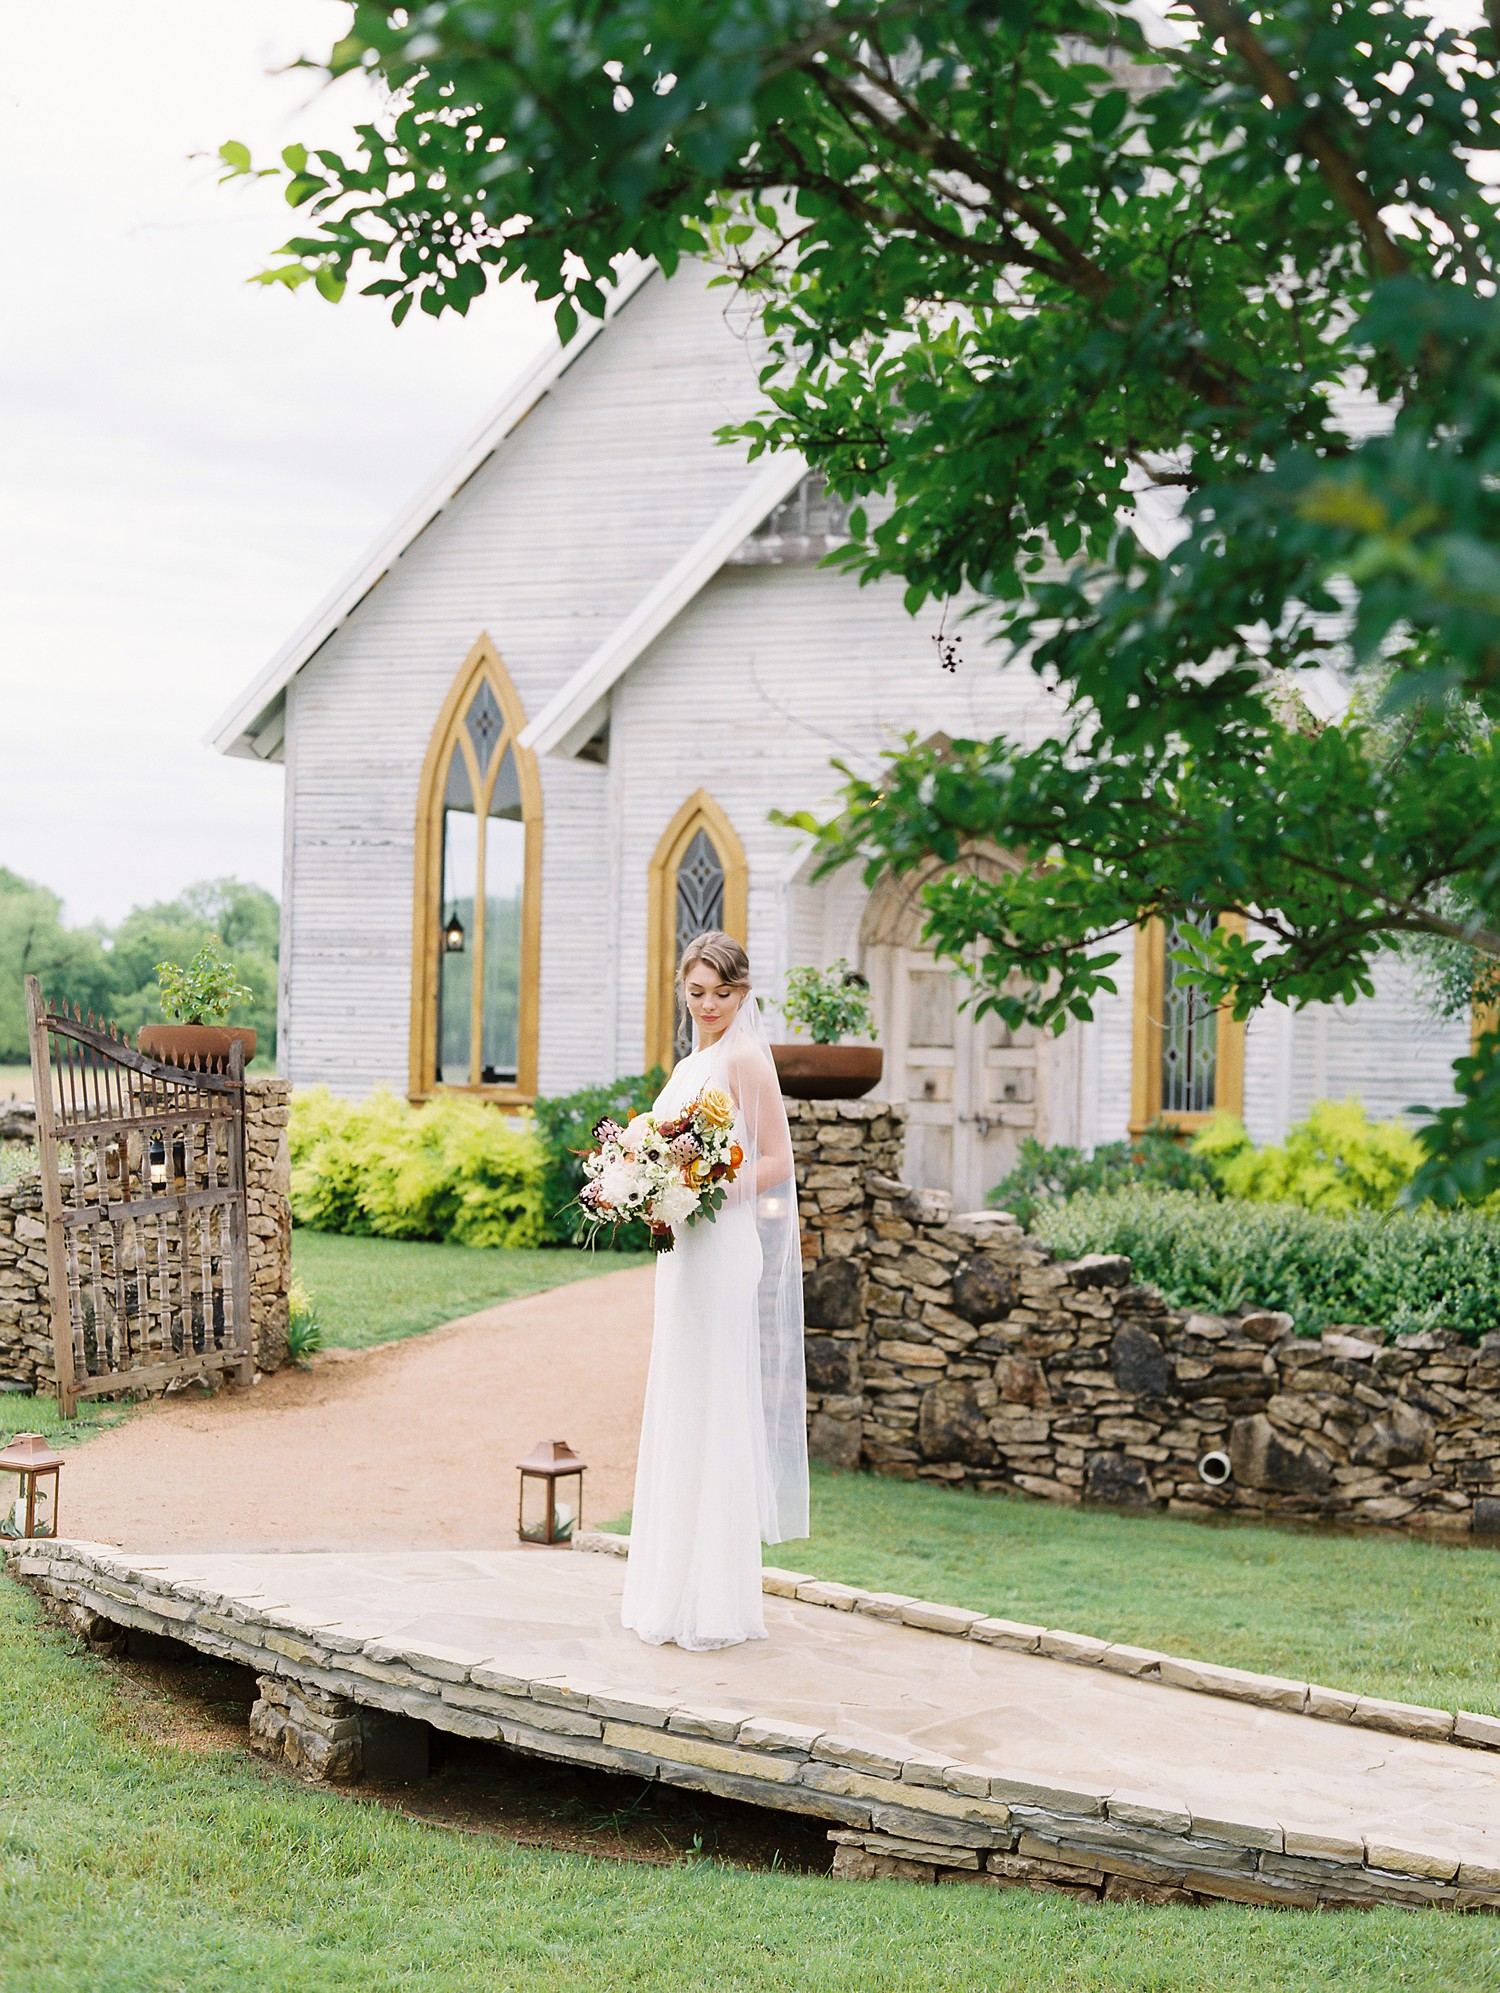 Summer Wedding Inspiration, Bridal Photography | Wedding Gift | Something Old | | Summer Wedding Inspiration | Fort Worth Wedding Photographer | The Brooks at Weatherford